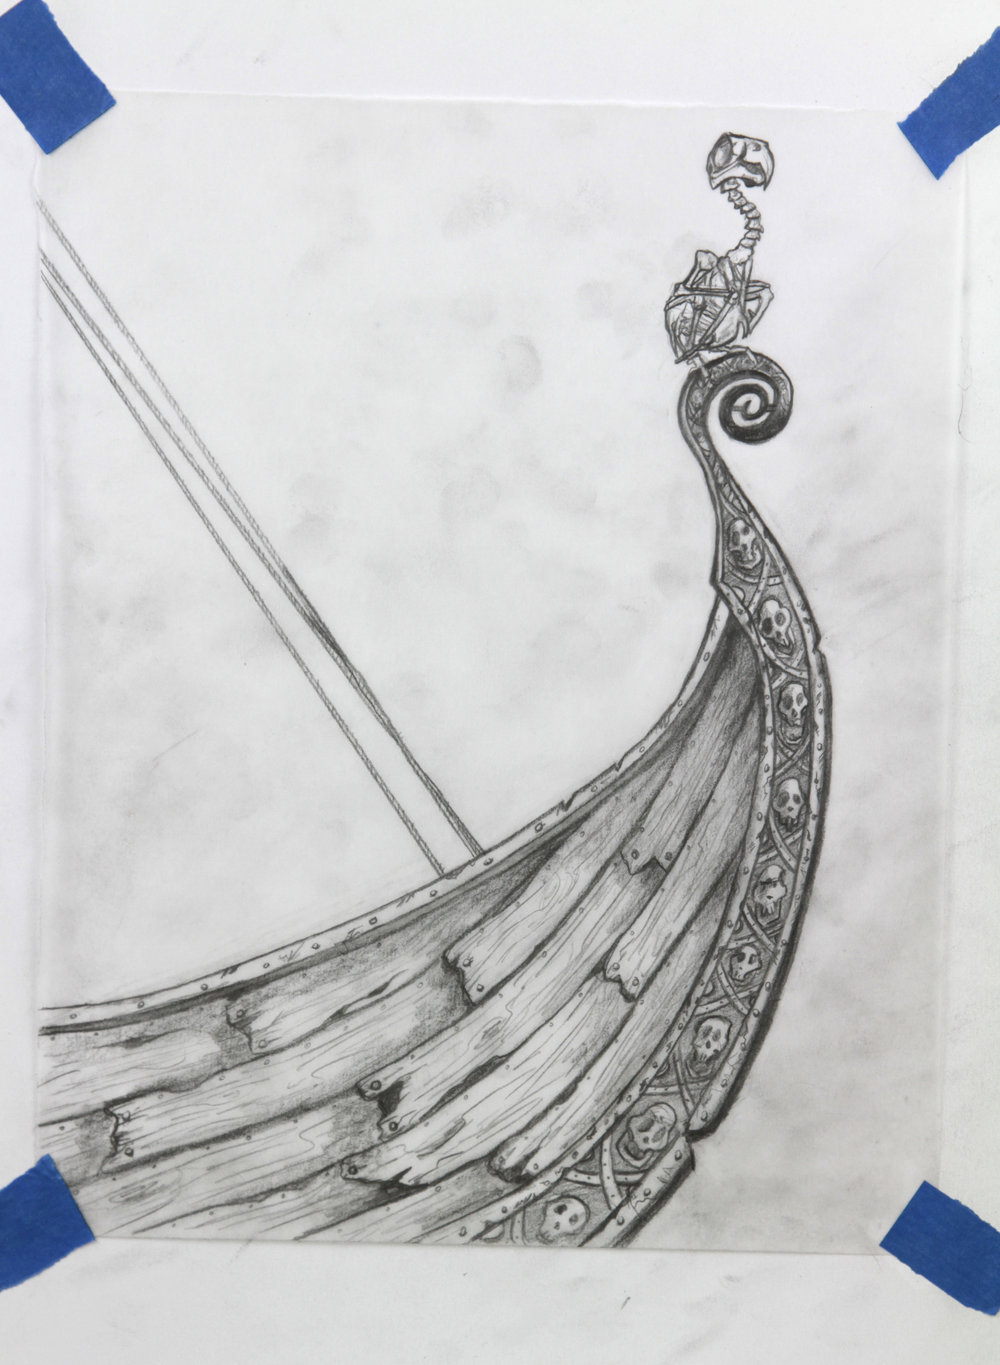 Second drawing for the ship